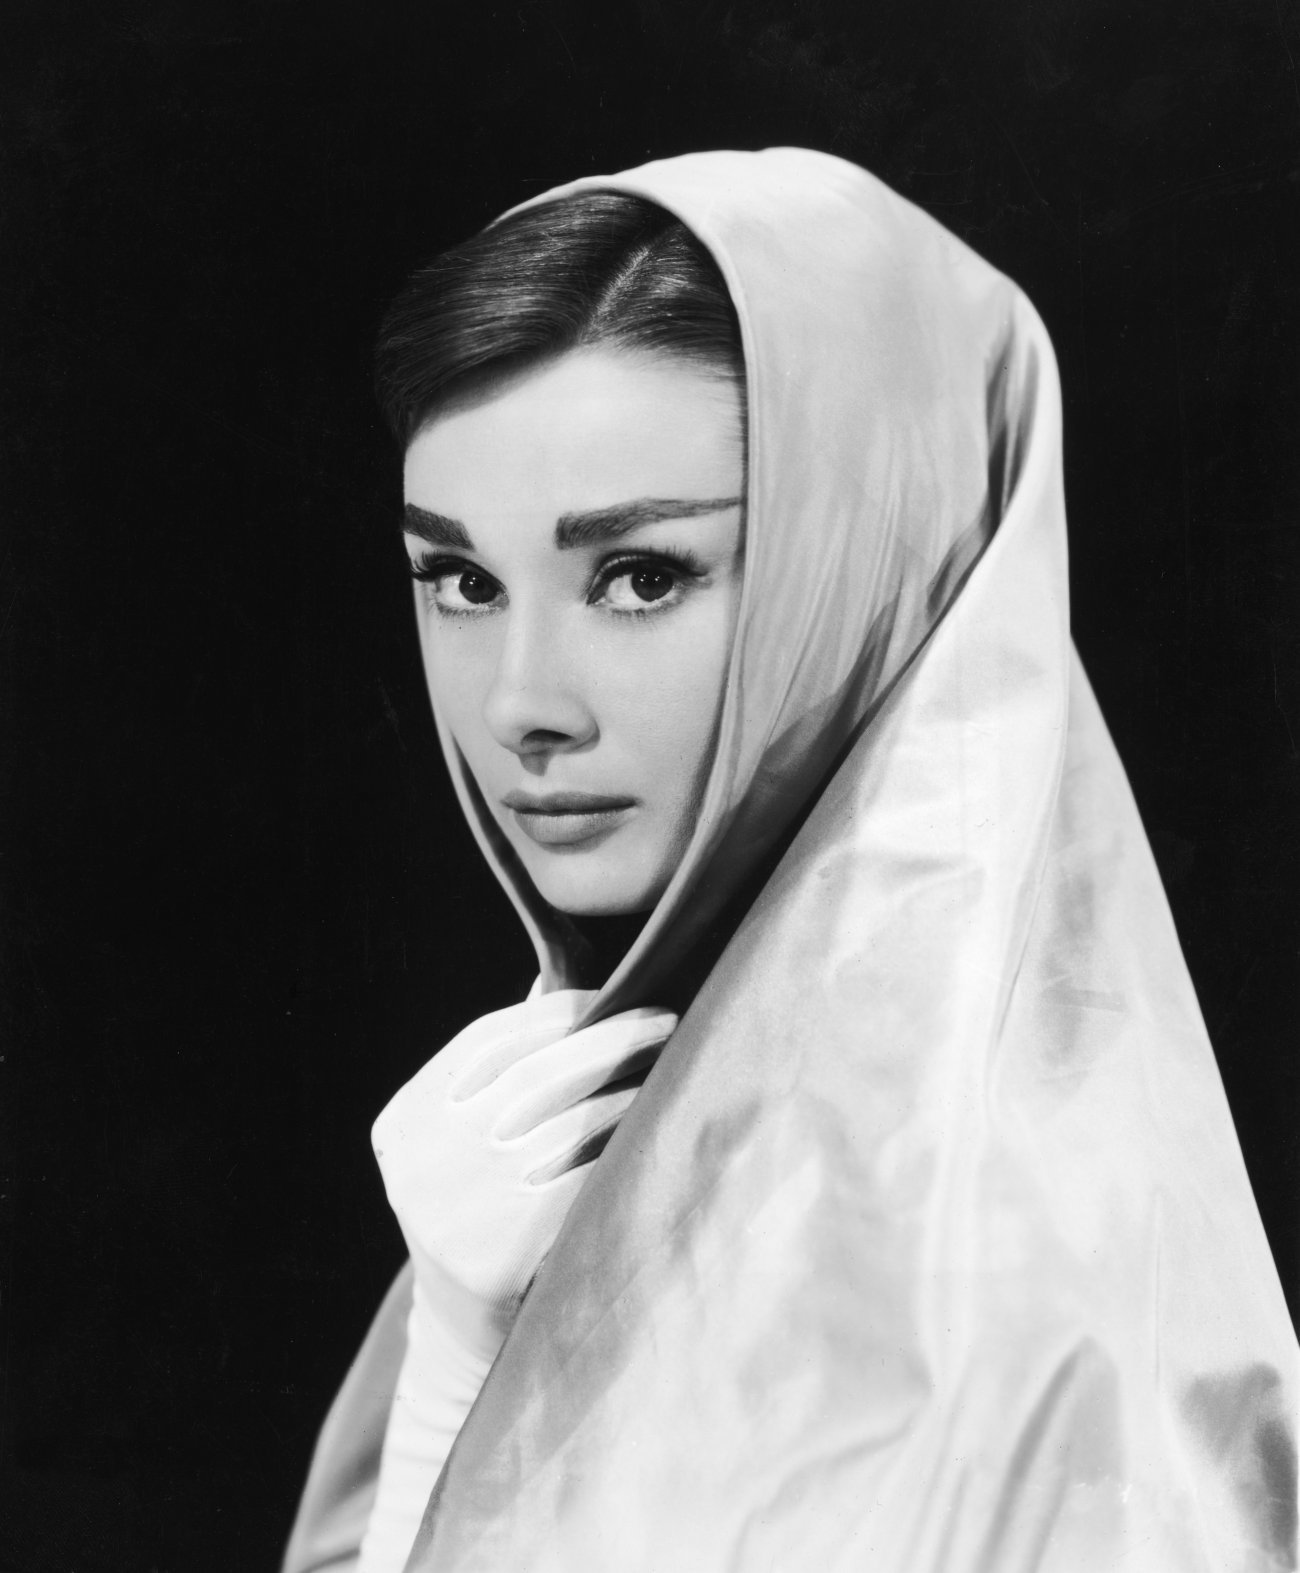 audrey hepburn images audrey hepburn hd wallpaper and background photos 21766554. Black Bedroom Furniture Sets. Home Design Ideas